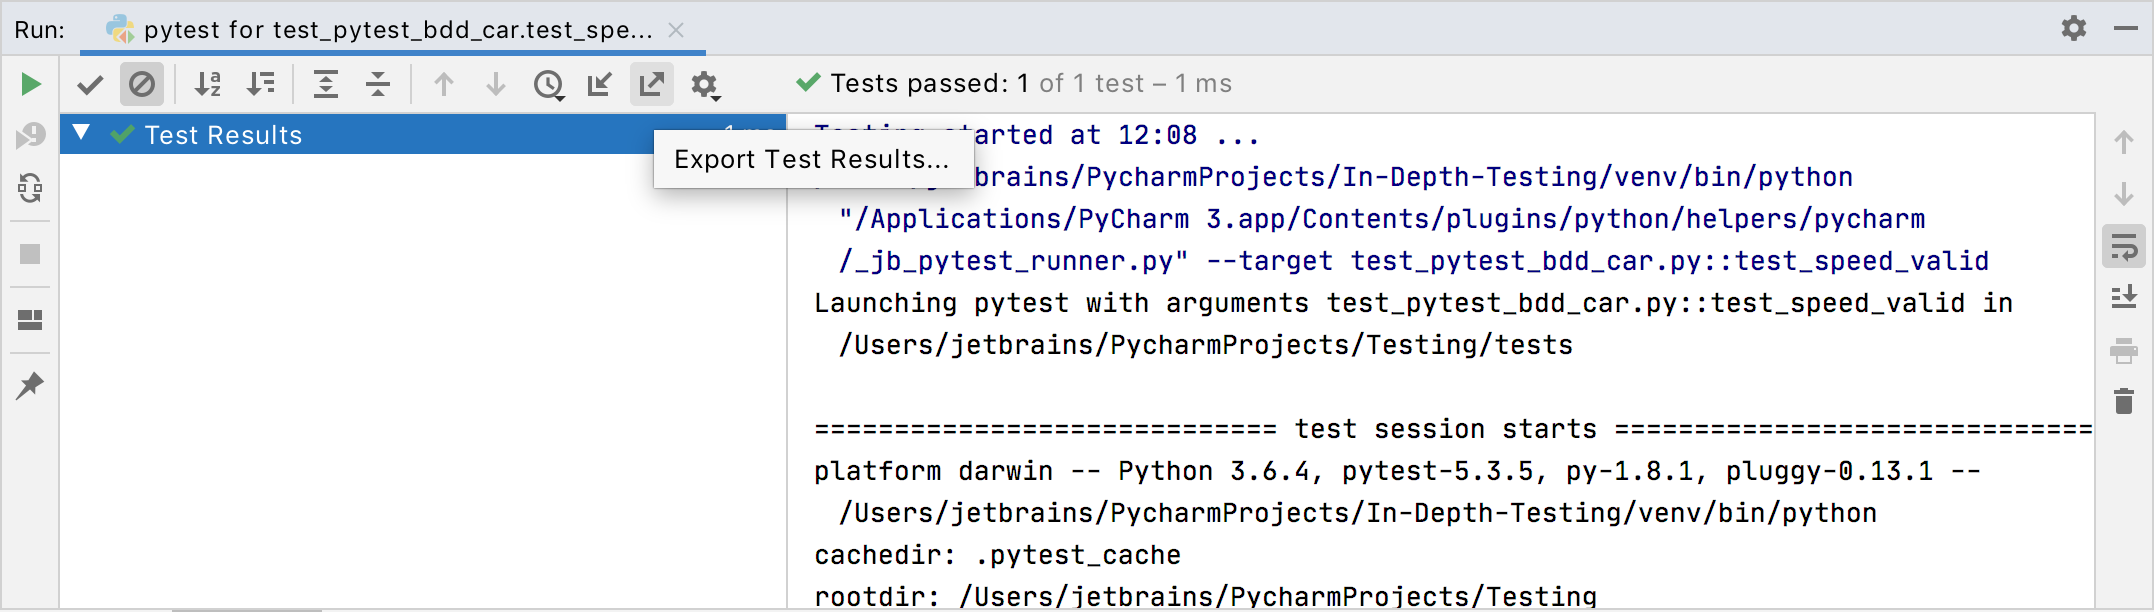 exporting test results